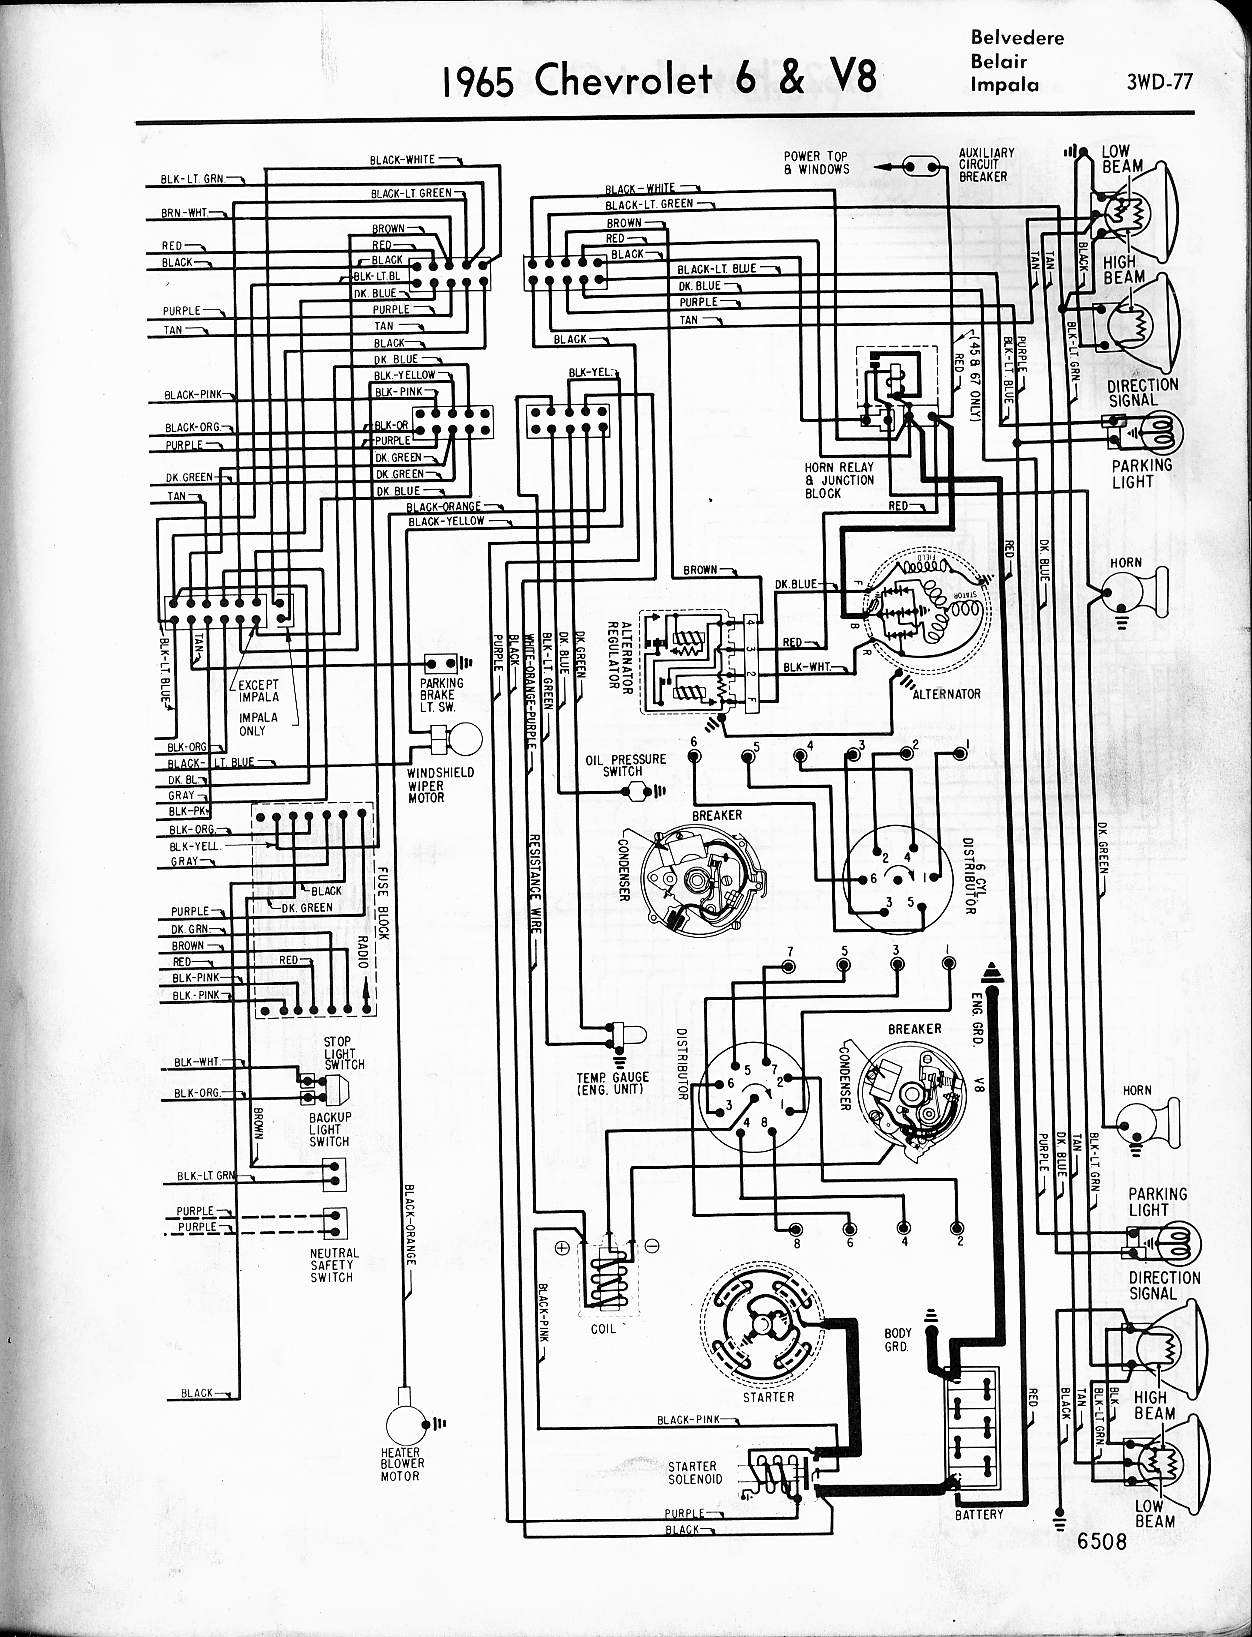 1965 Chevelle Dash Wiring Schematics Diagrams Buick Skylark Harness Diagram For 1970 Chevy Get Free